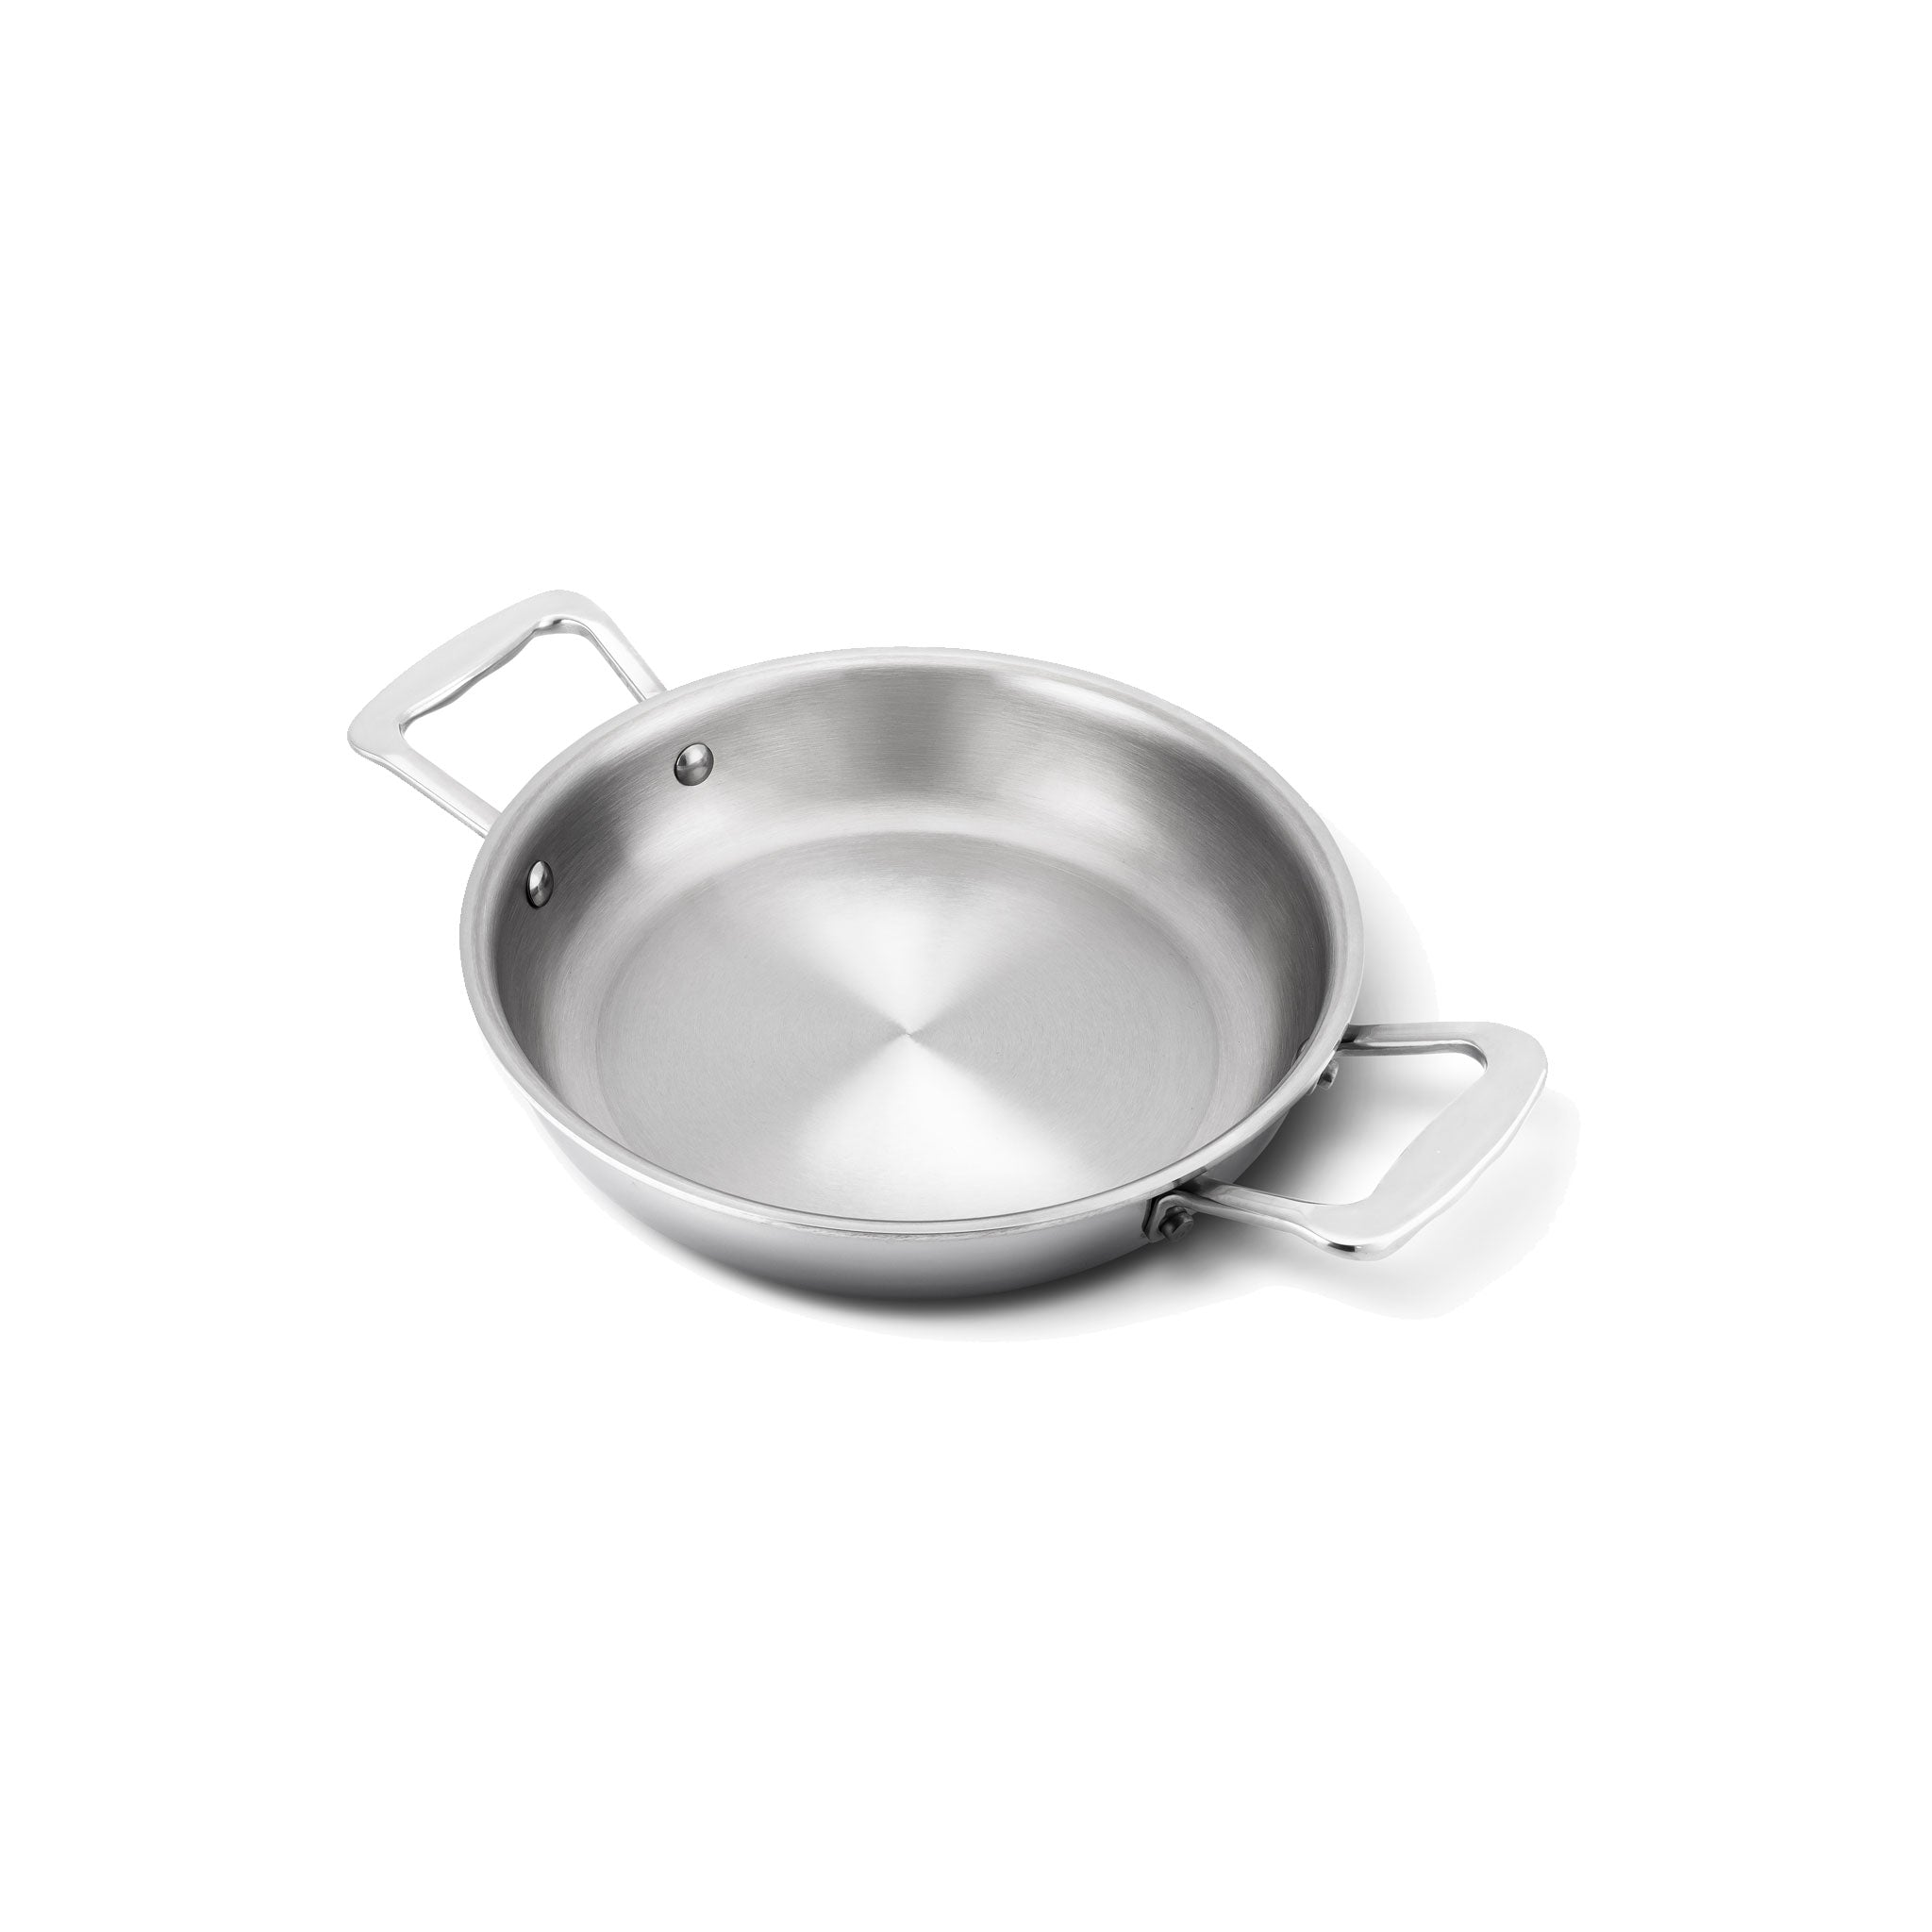 **New Item** 8.5 Inch Fry Pan with Short Handles